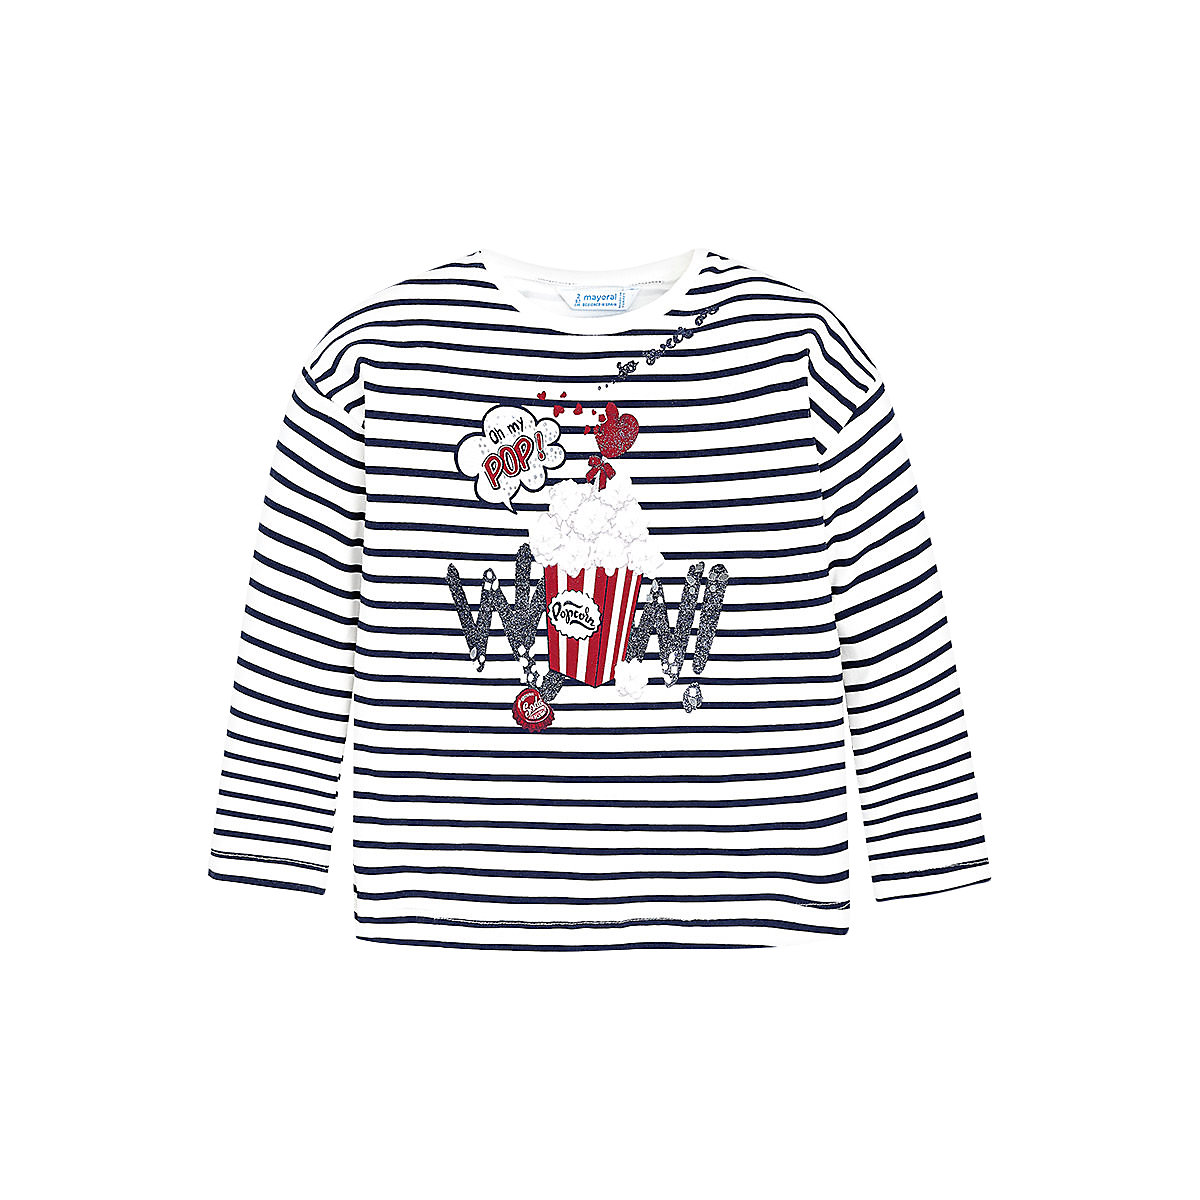 MAYORAL Blouses & Shirts 8848838 Girls Cotton  clothes baby boy children child wear children s underwear suit pure cotton boy new spring and autumn winter 12 15 year old child baby long sleeved clothes